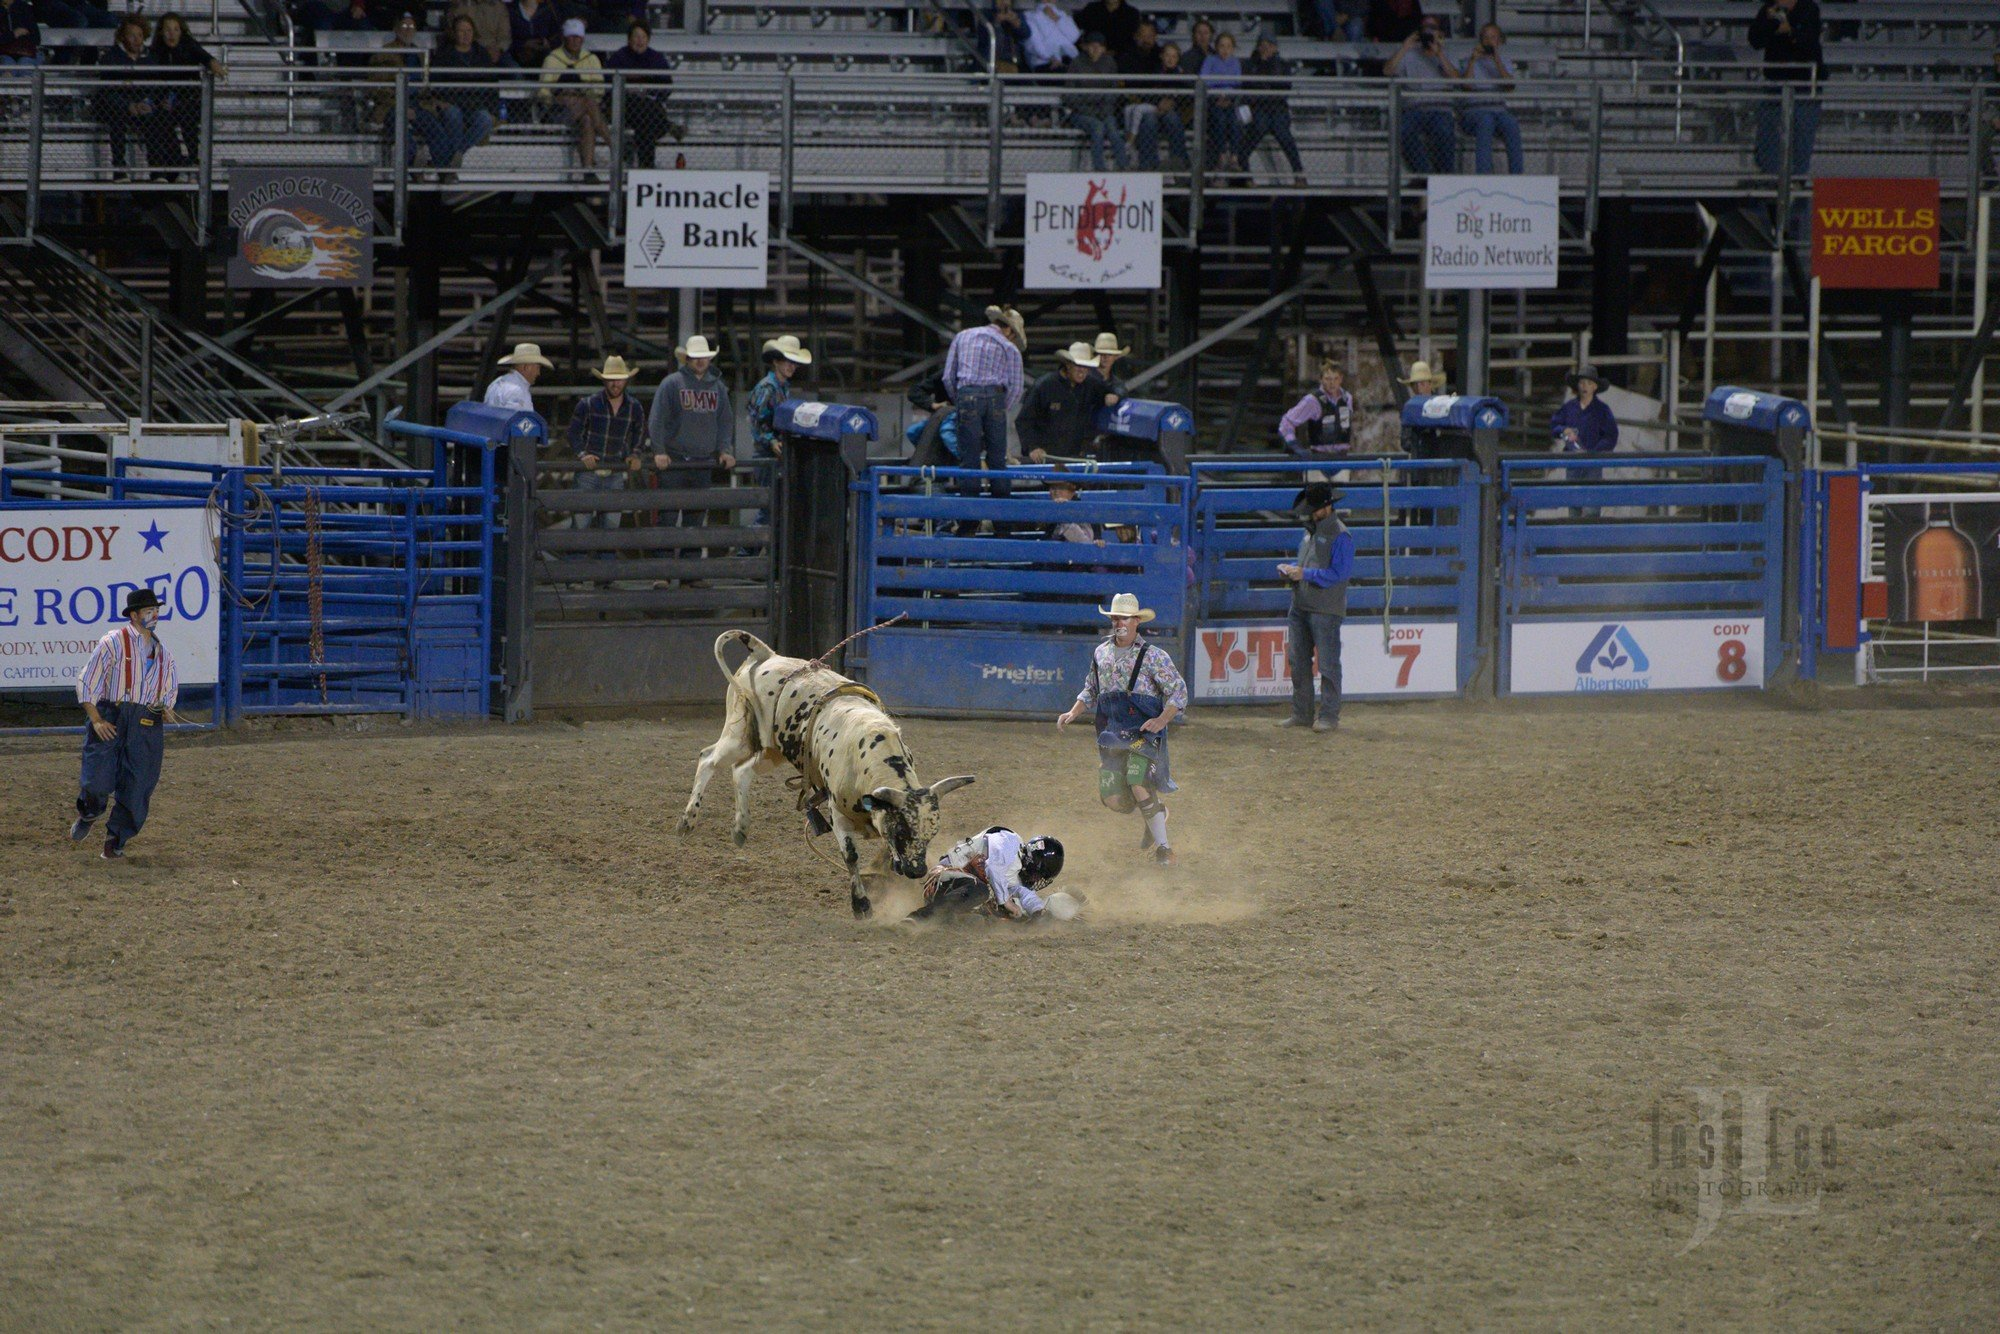 Z7 iso 5000 Cody night rodeo